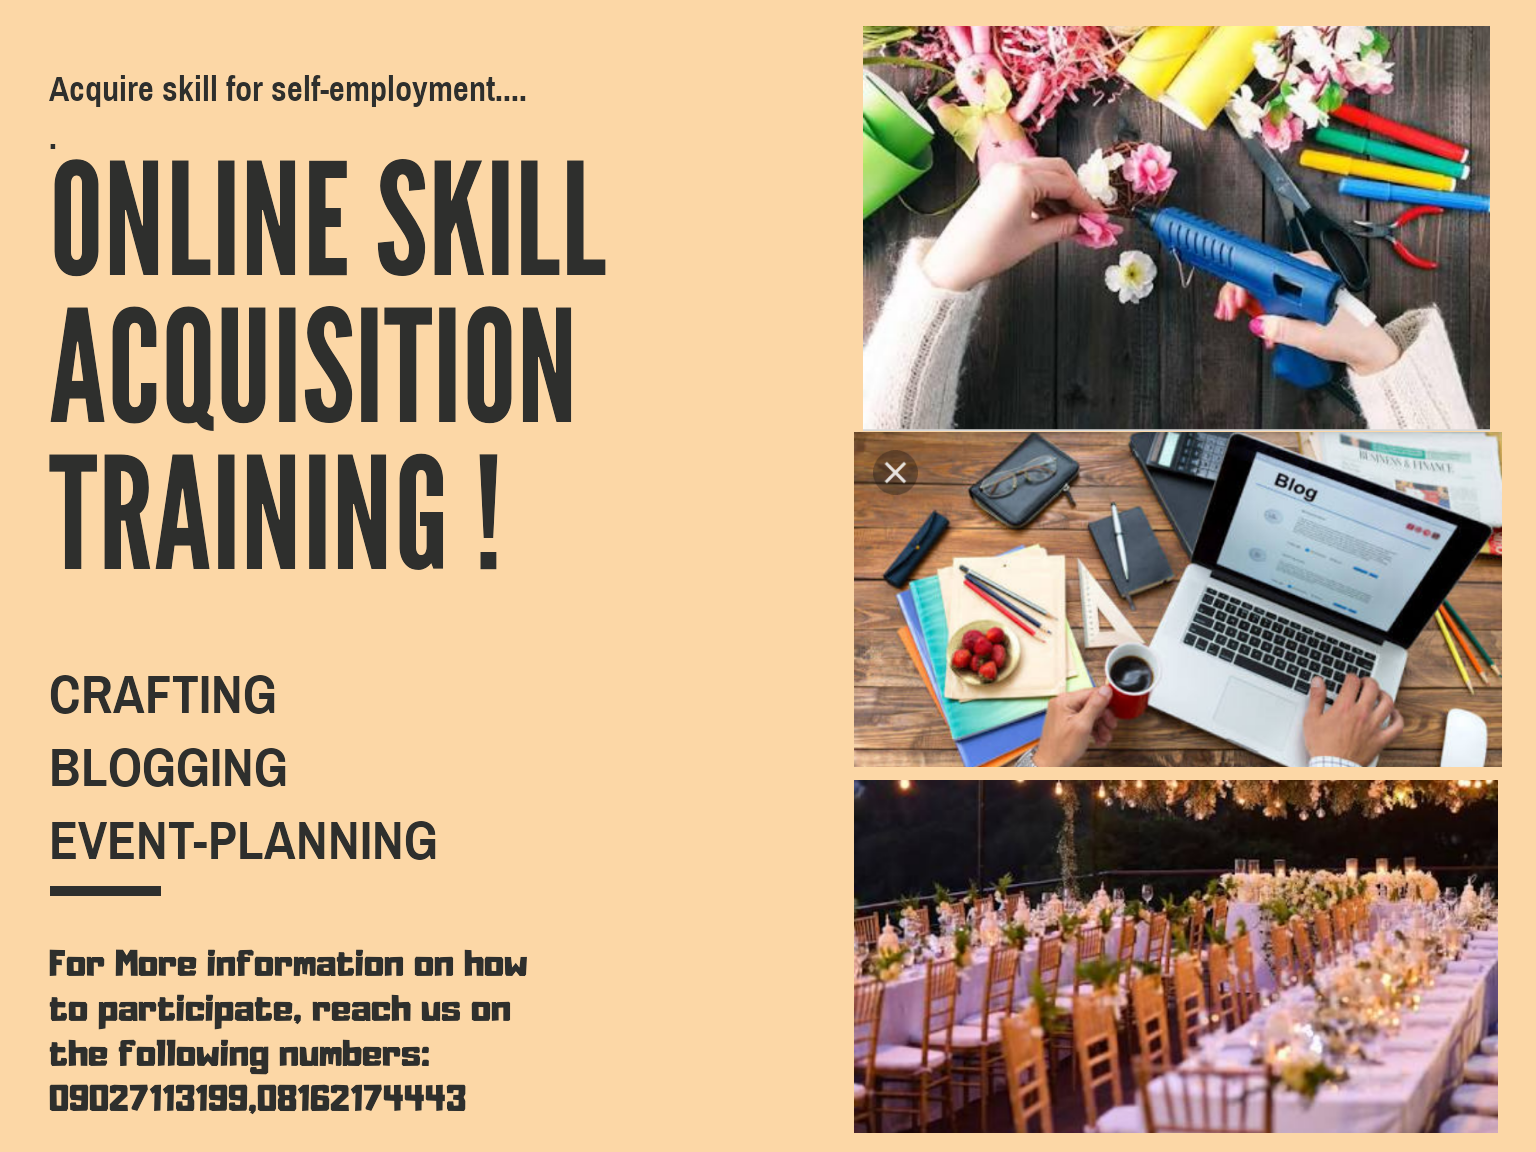 Become self-employed by acquiring these skills 1